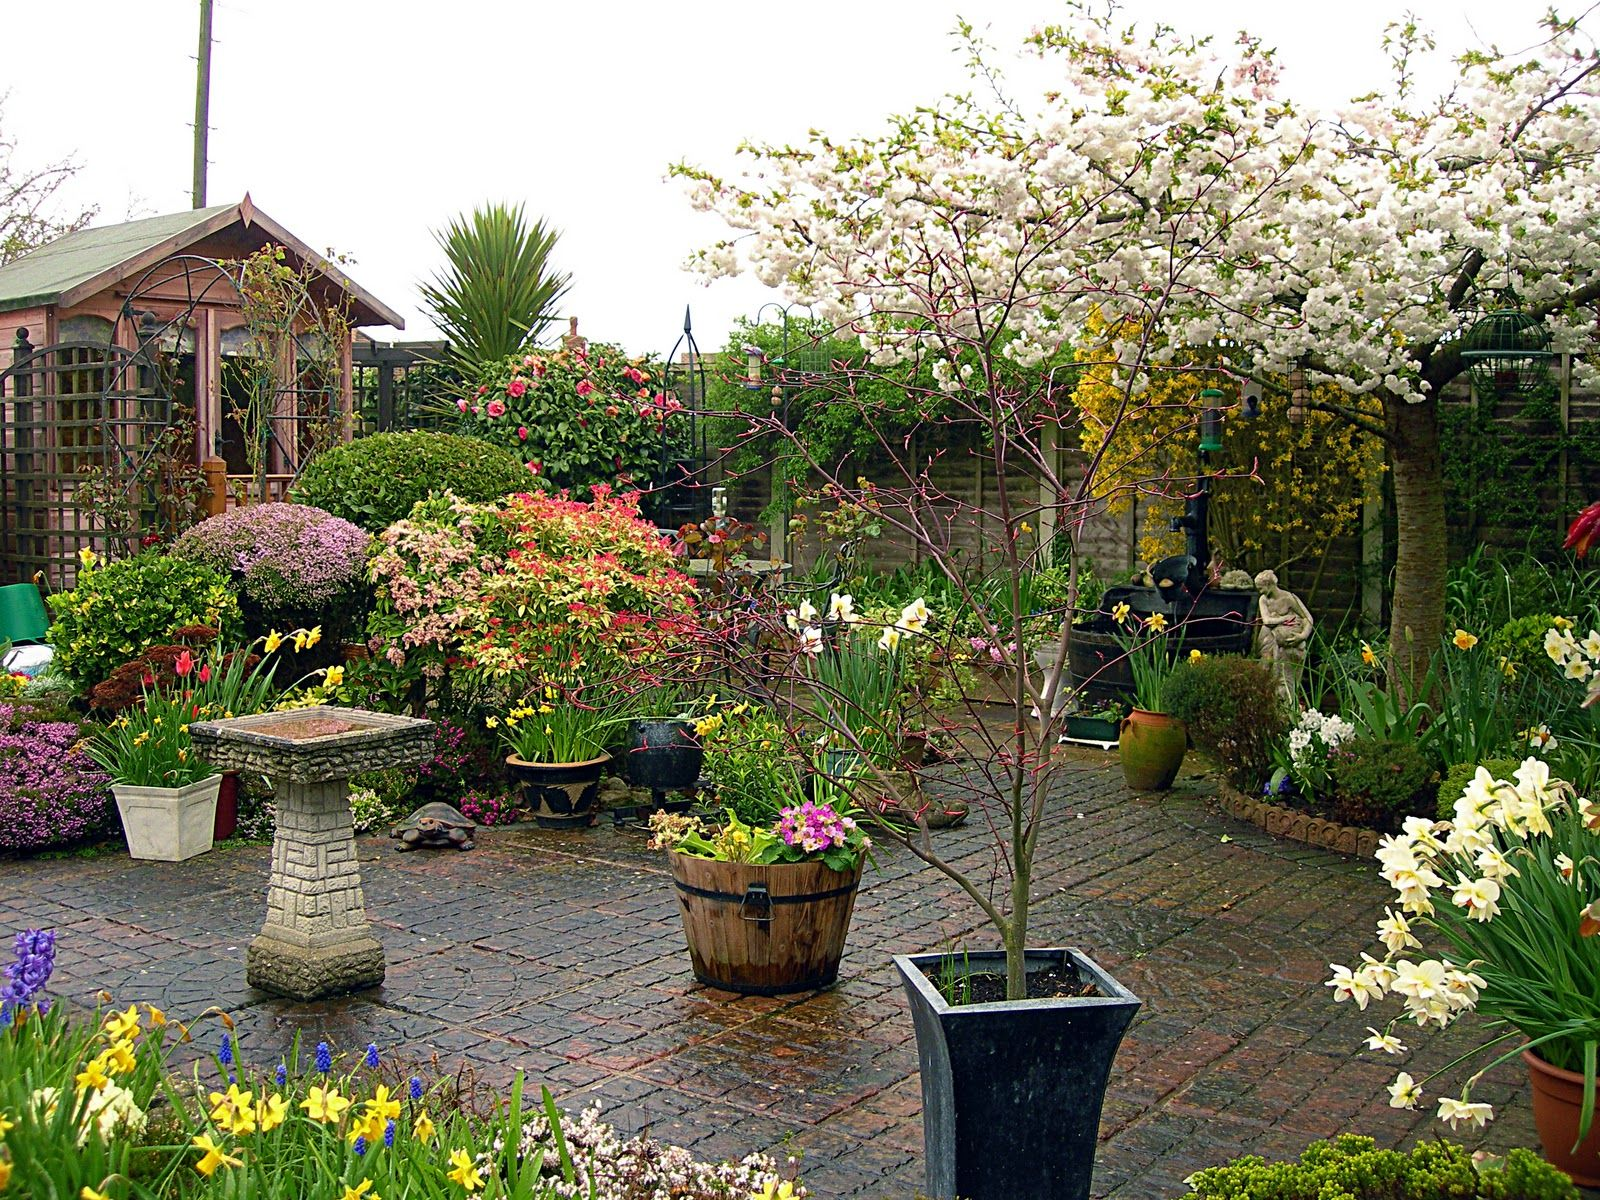 Beautiful Home Gardens | Back Home To Relax In My Beautiful Home And Garden  With My John Bliss #gardenideas #homegardens | Gardening | Pinterest |  Gardens